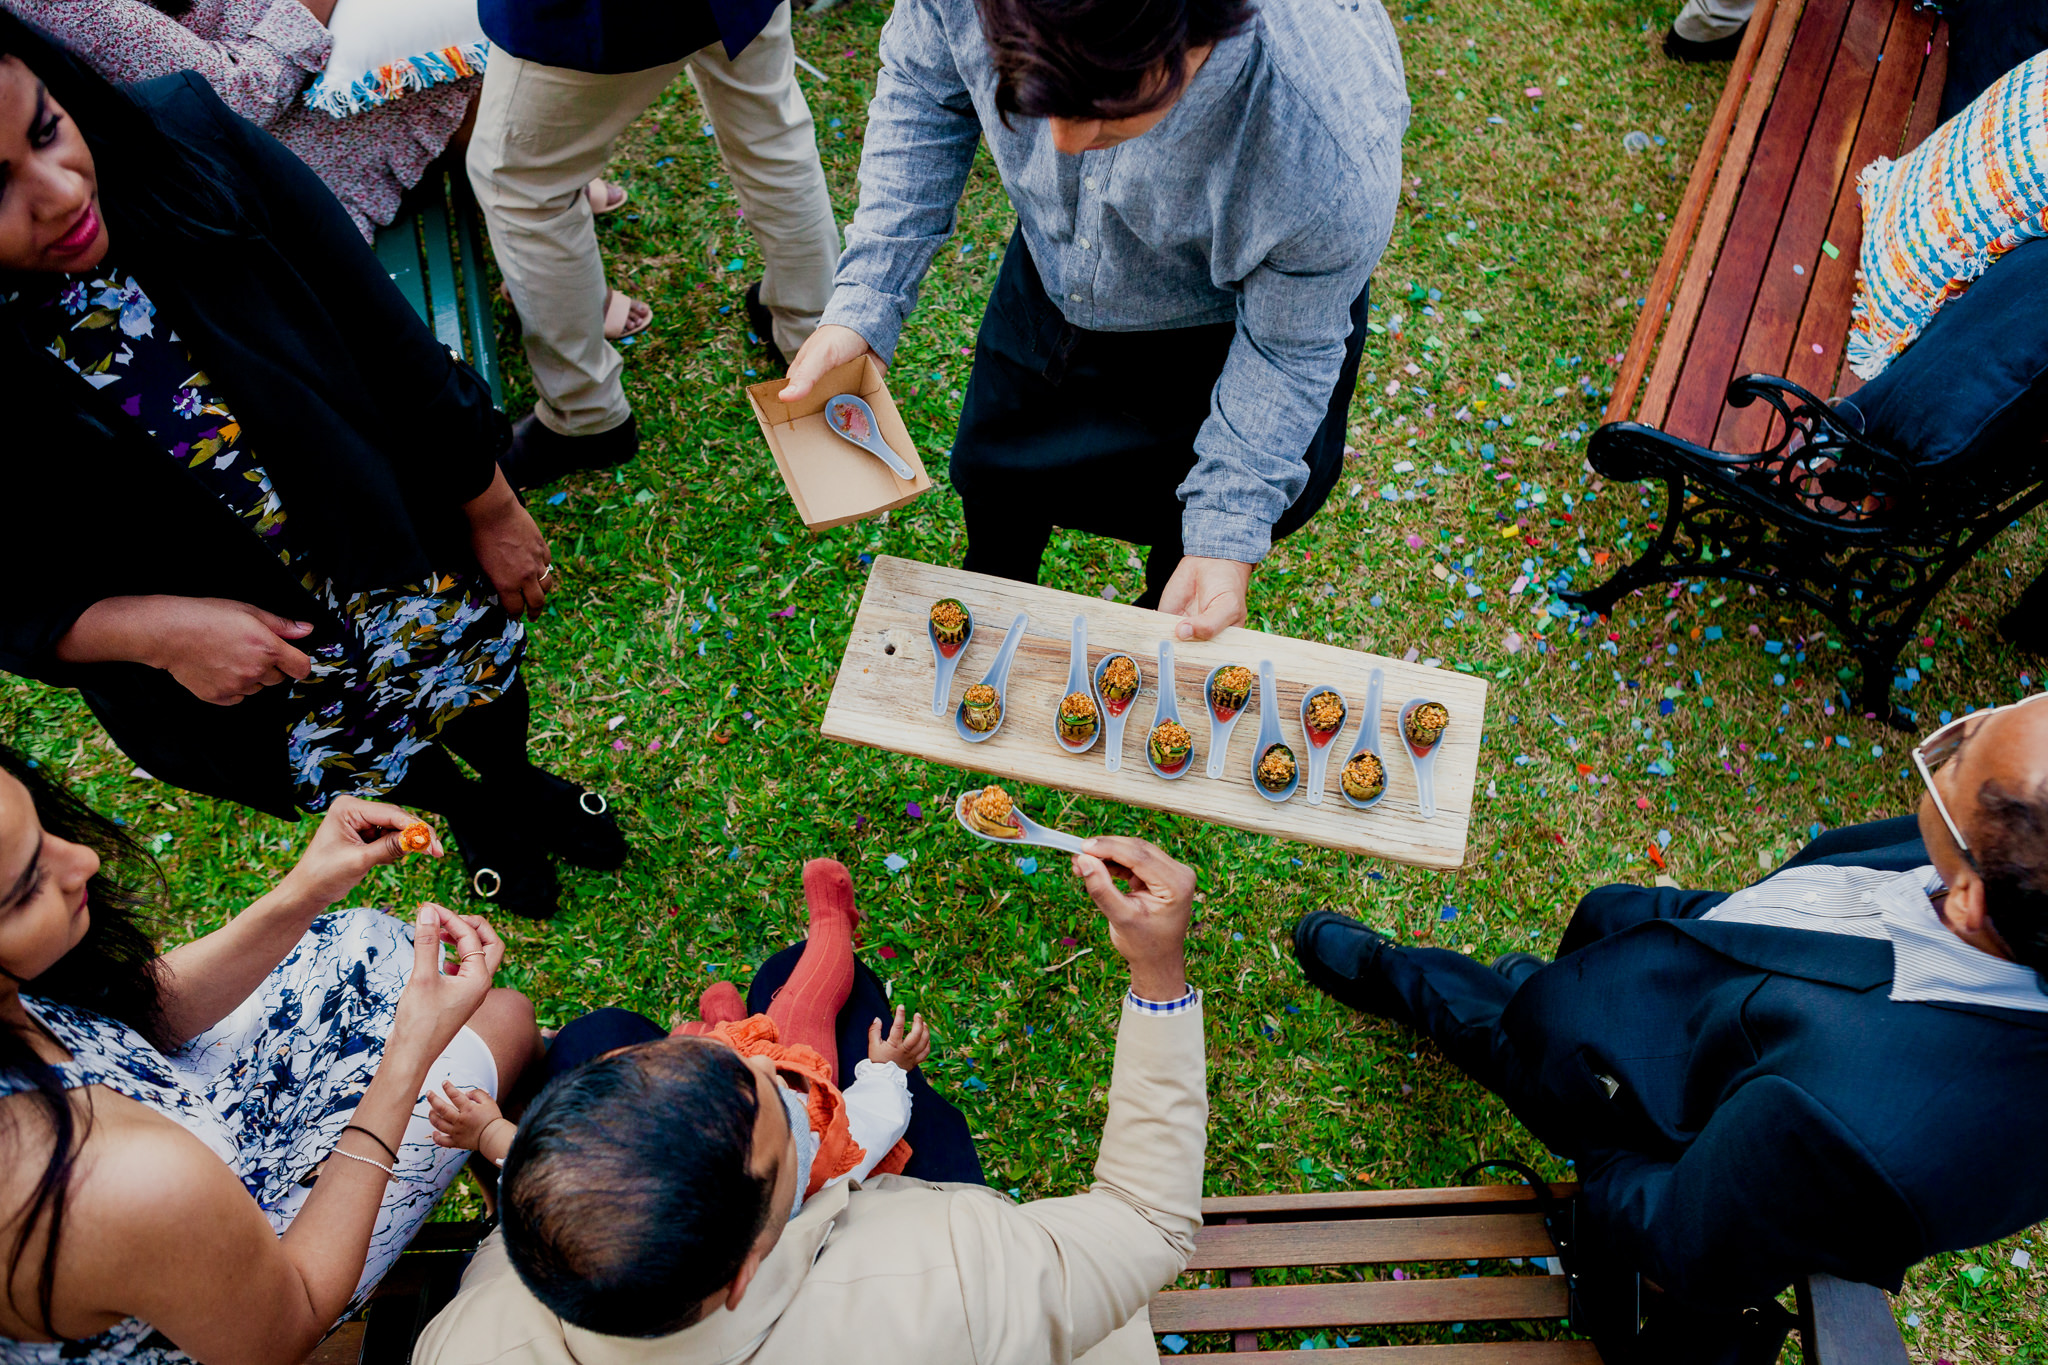 Aerial view of caterer serving guests canapes on a lawn